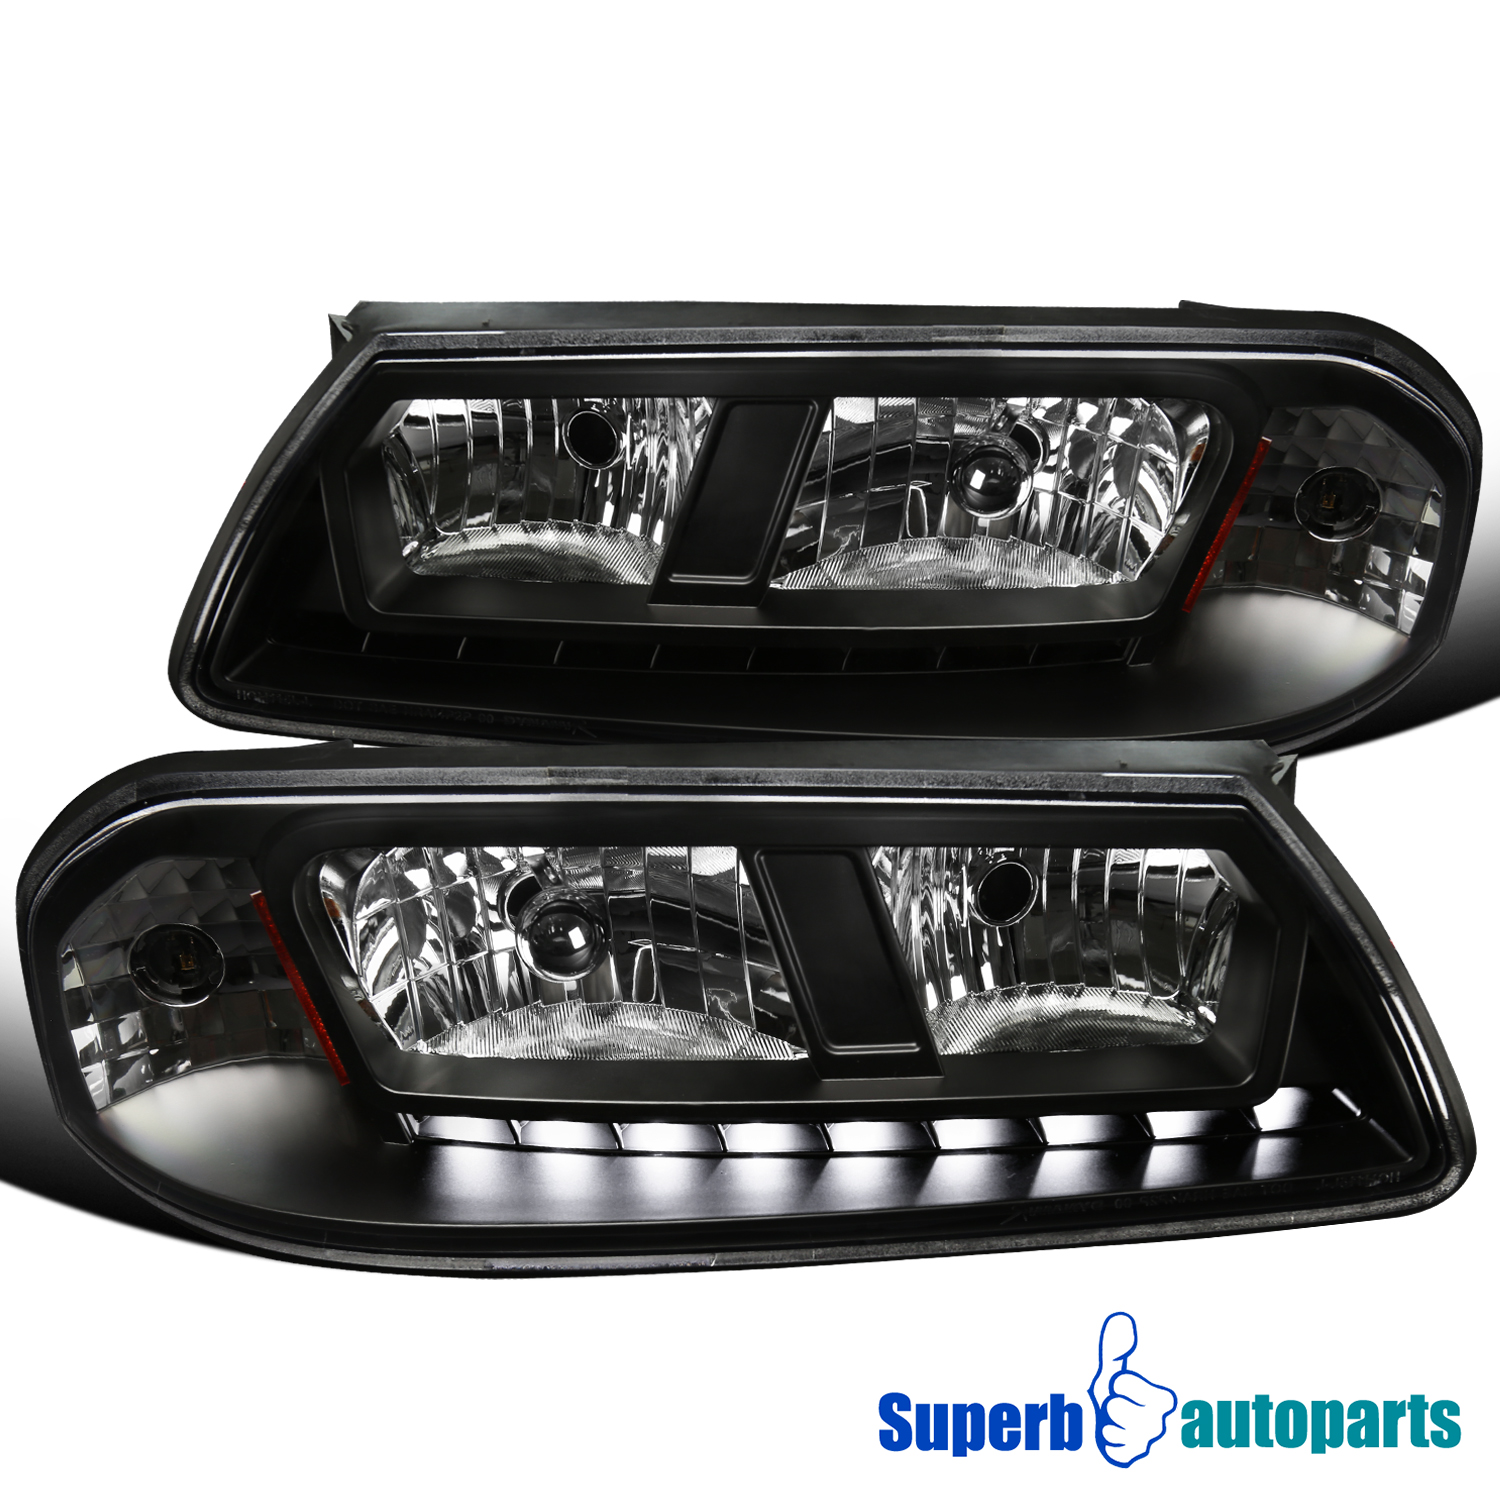 chevy impala headlights bulbs ebay autos post. Black Bedroom Furniture Sets. Home Design Ideas